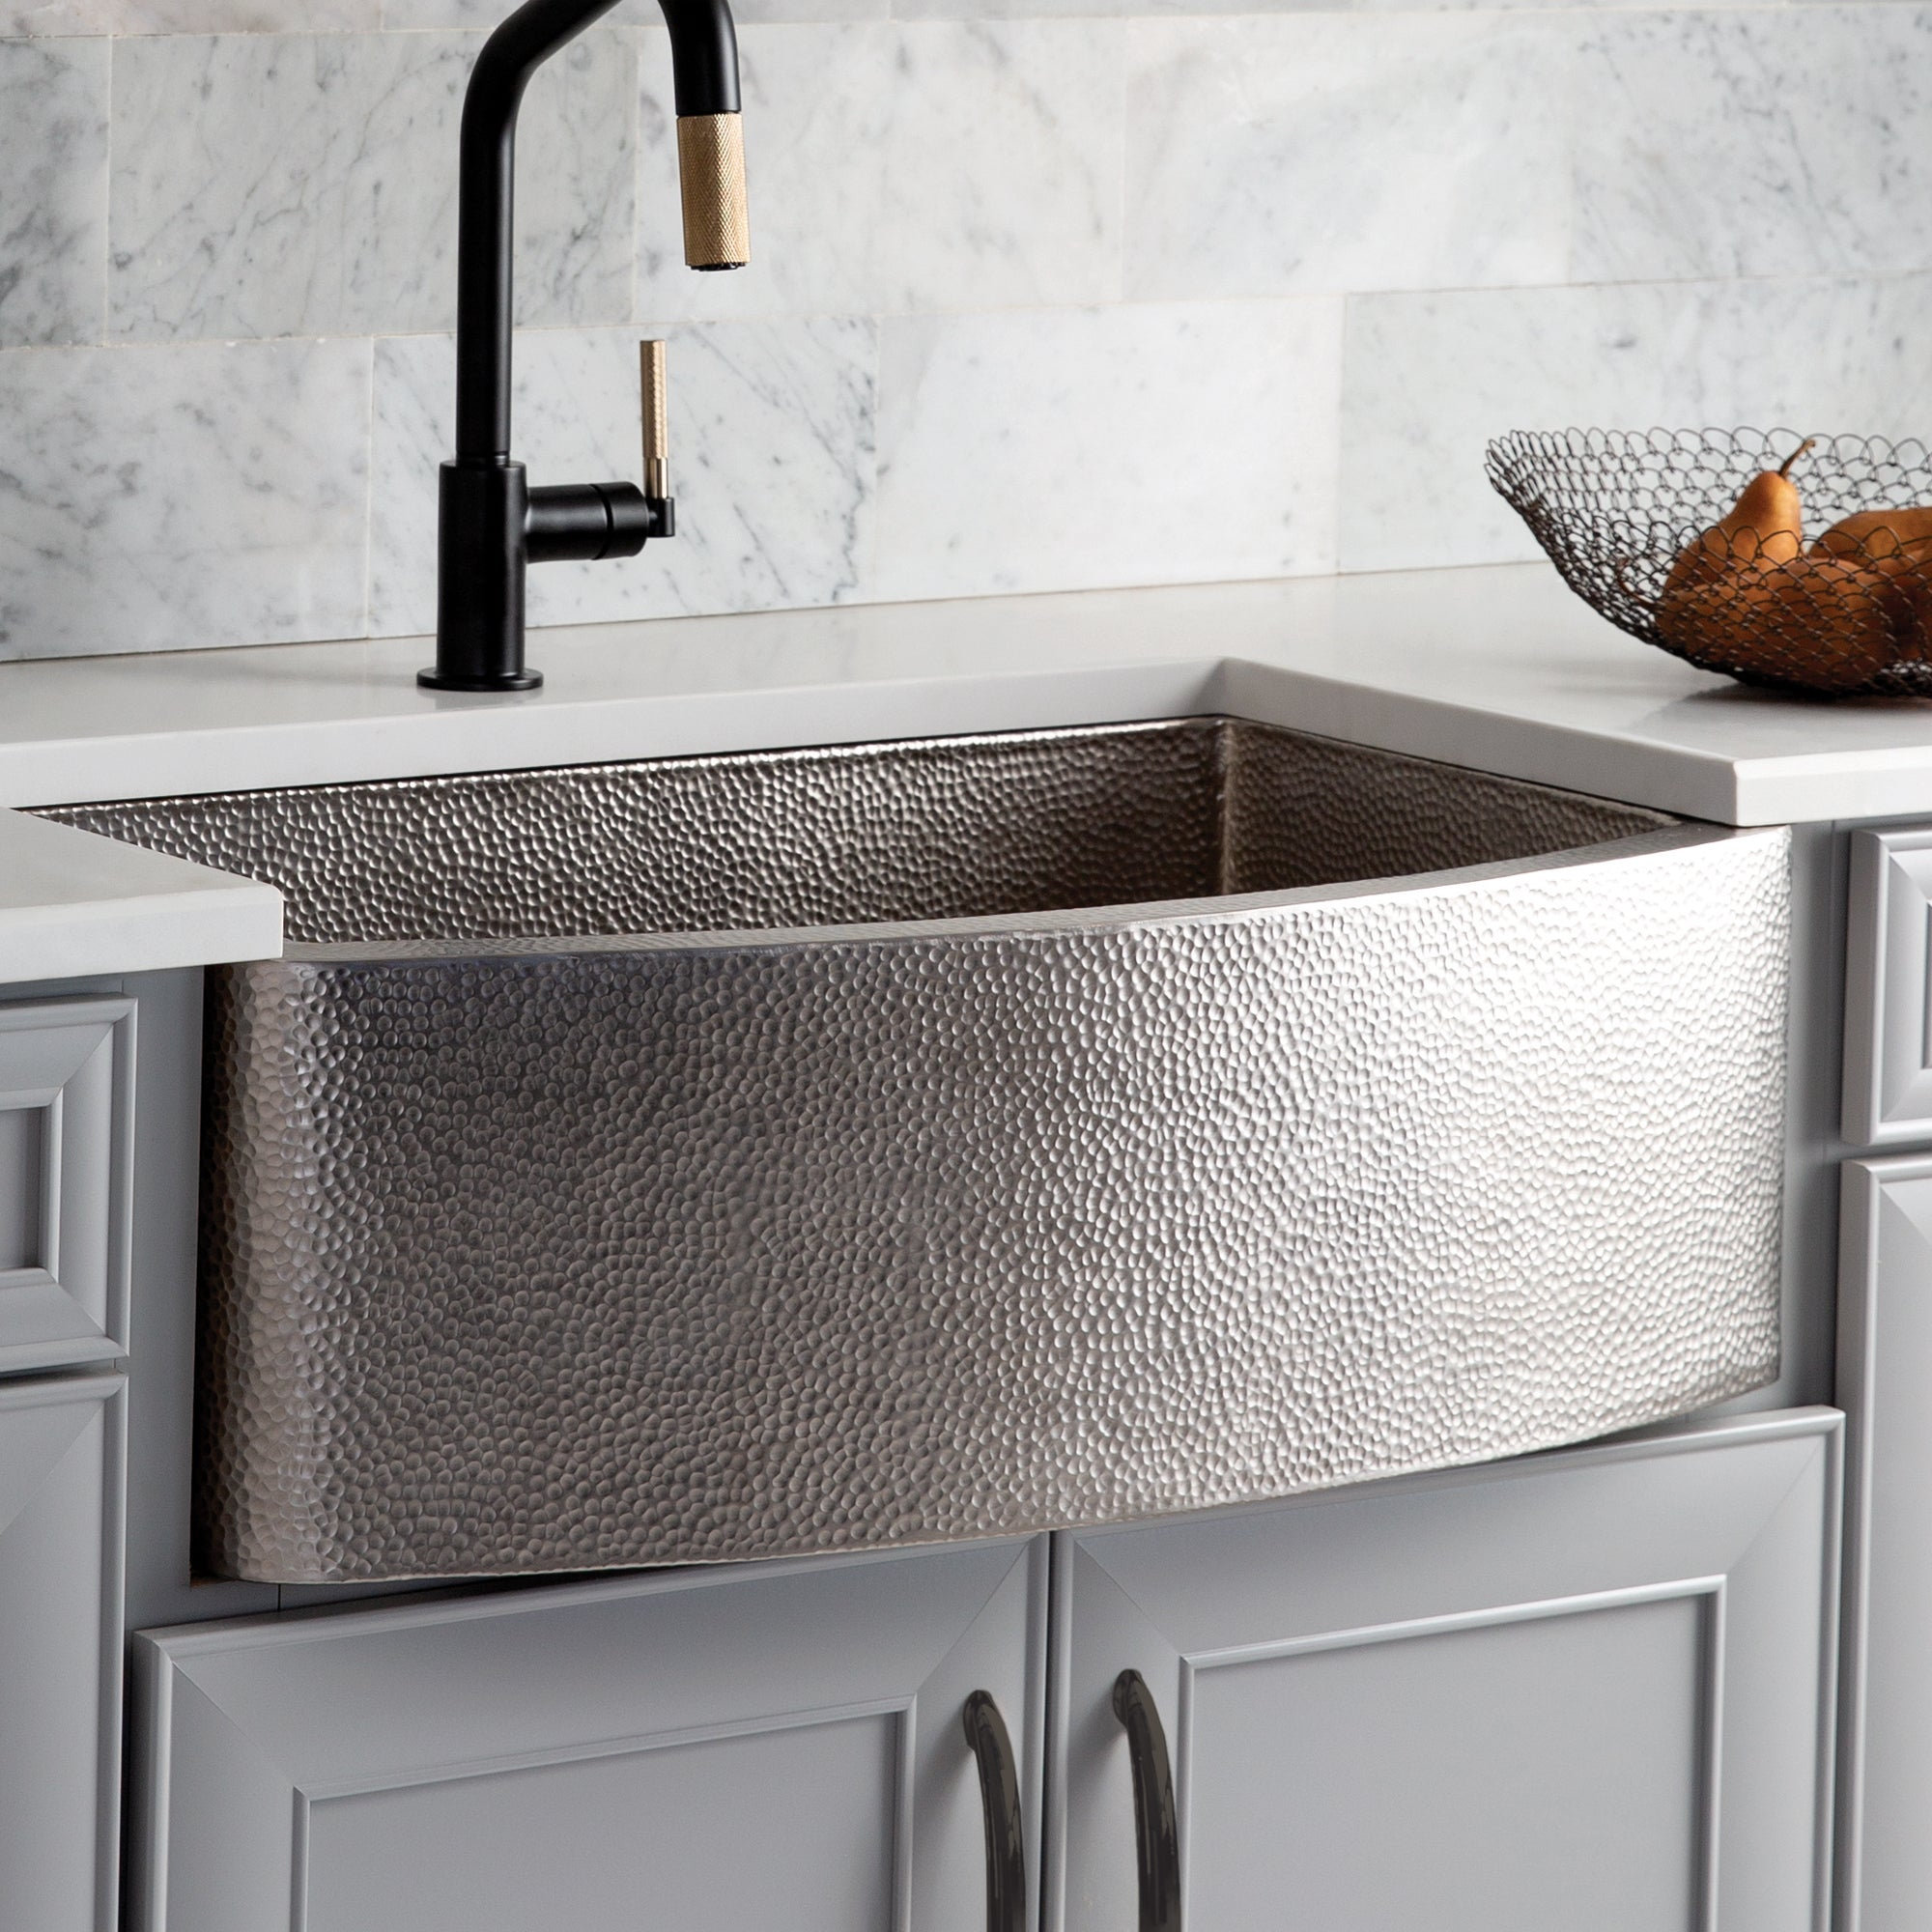 Native Trails Rhapsody 33 Nickel Farmhouse Sink Brushed Nickel Cpk5 The Sink Boutique